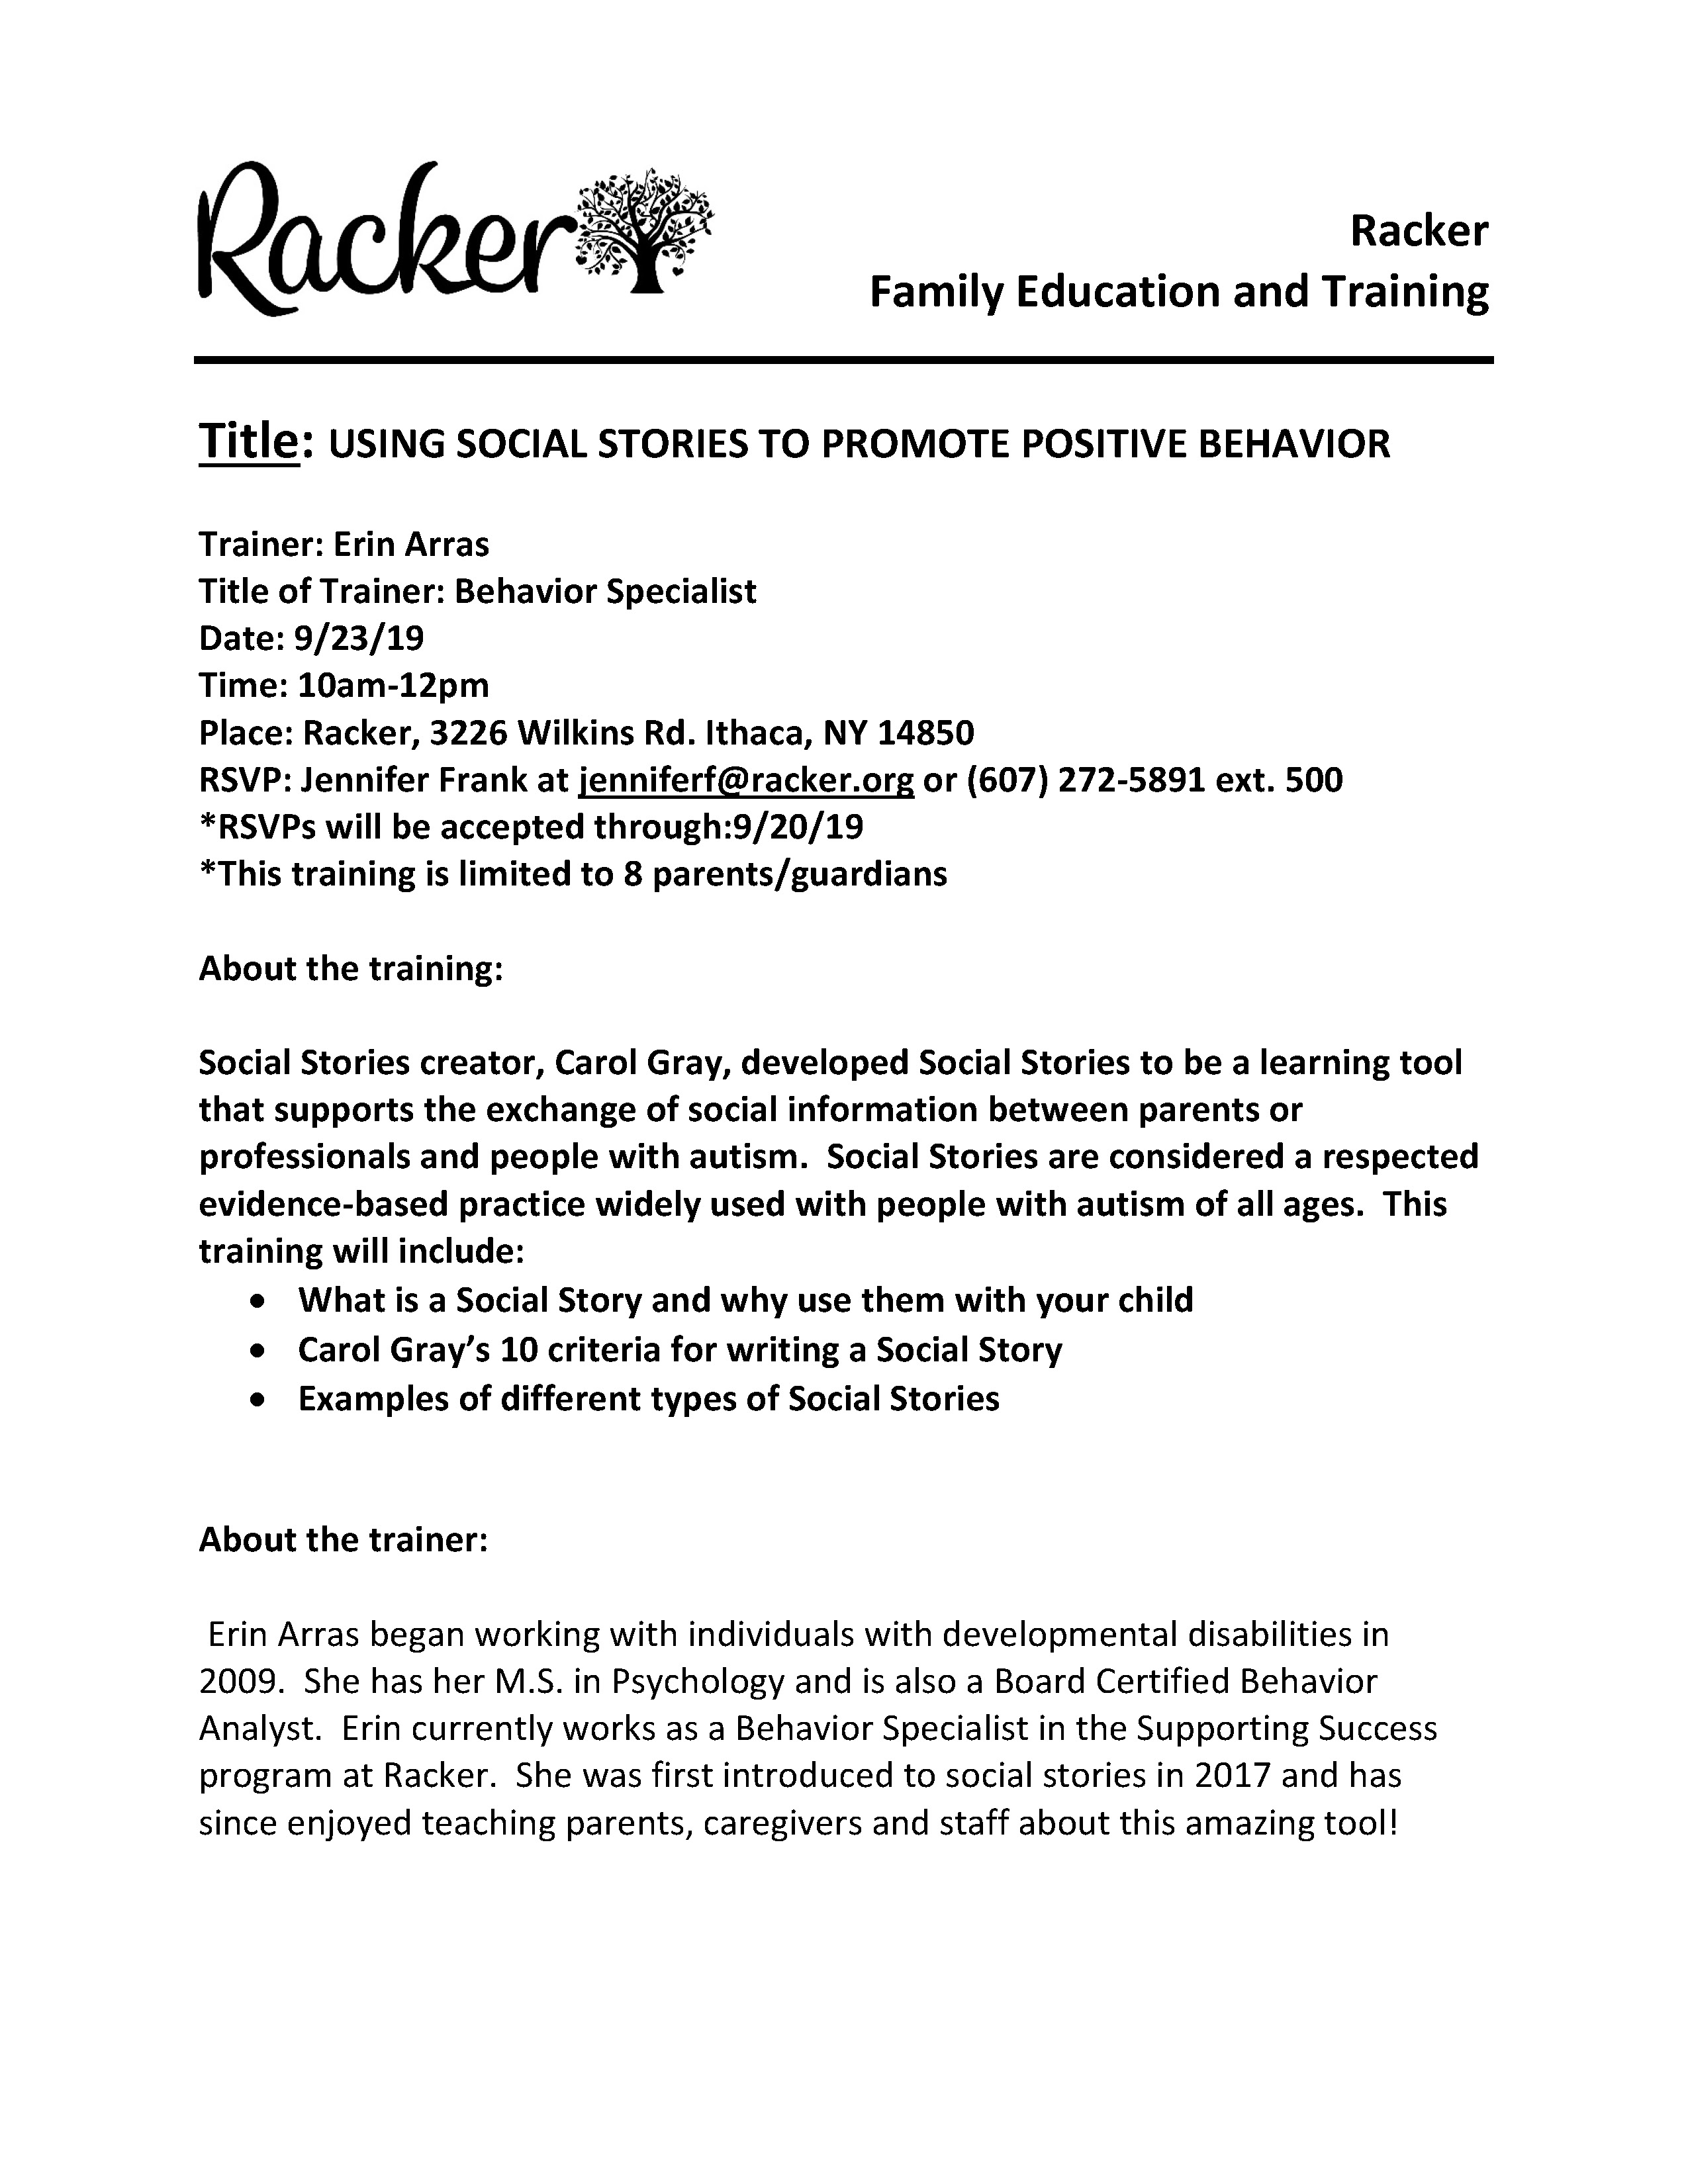 Using Social Stories to Promote Positive Behavior - Racker Family Education and Training